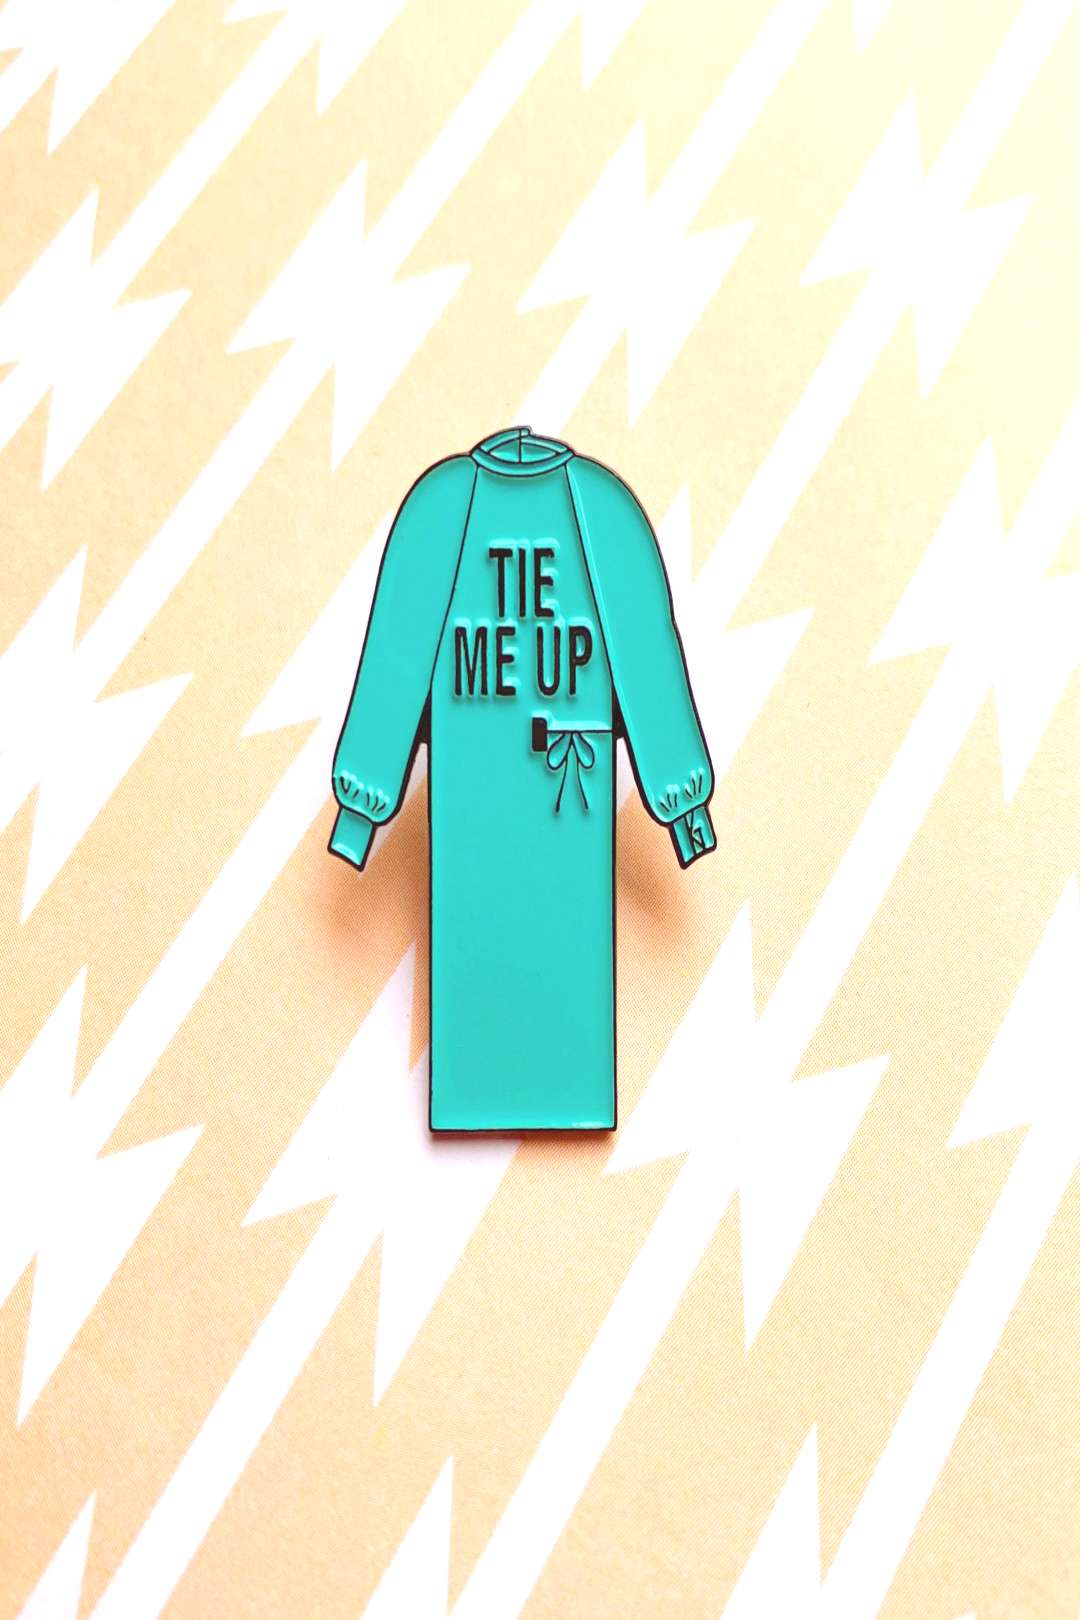 Tie Me Up Pin- All healthcare works should have access to PPE!